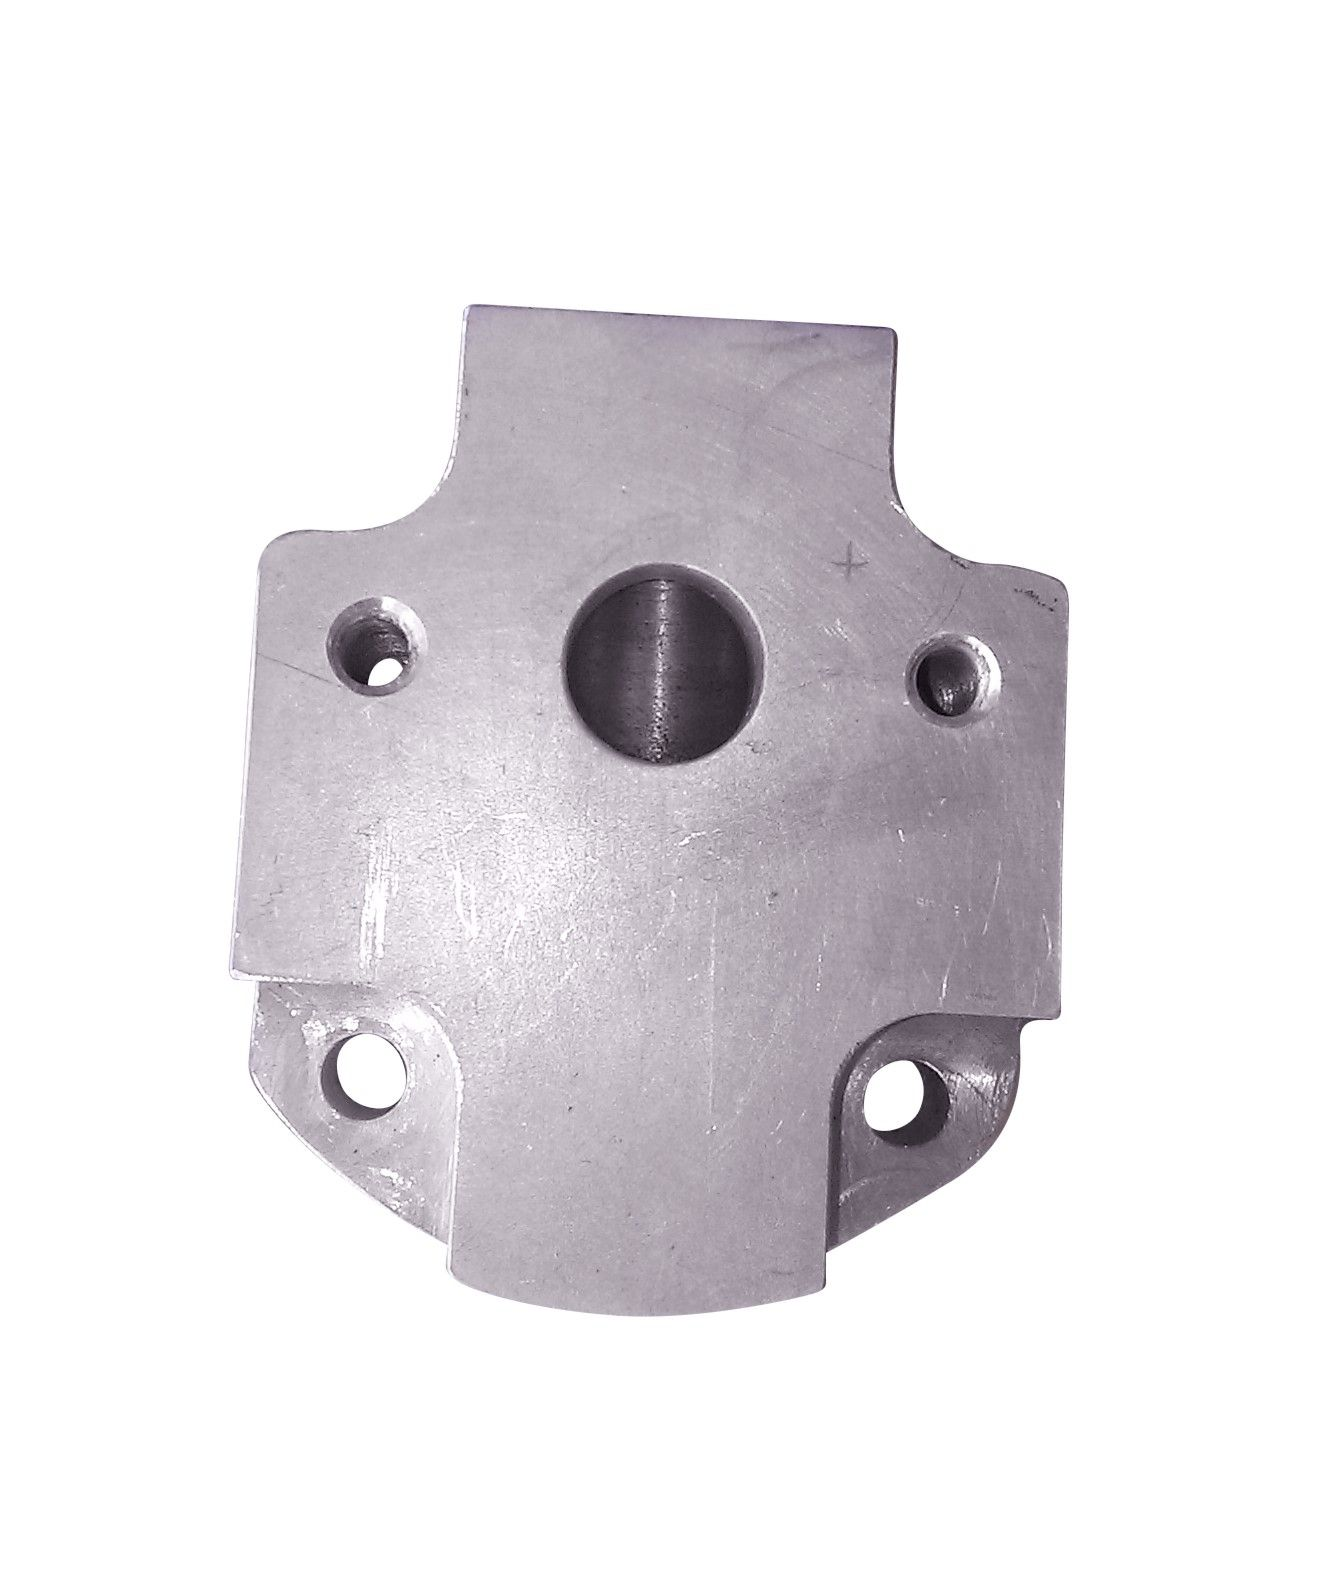 Idler Arm / Pulleys / Extras Thermoking Carrier Cooltek